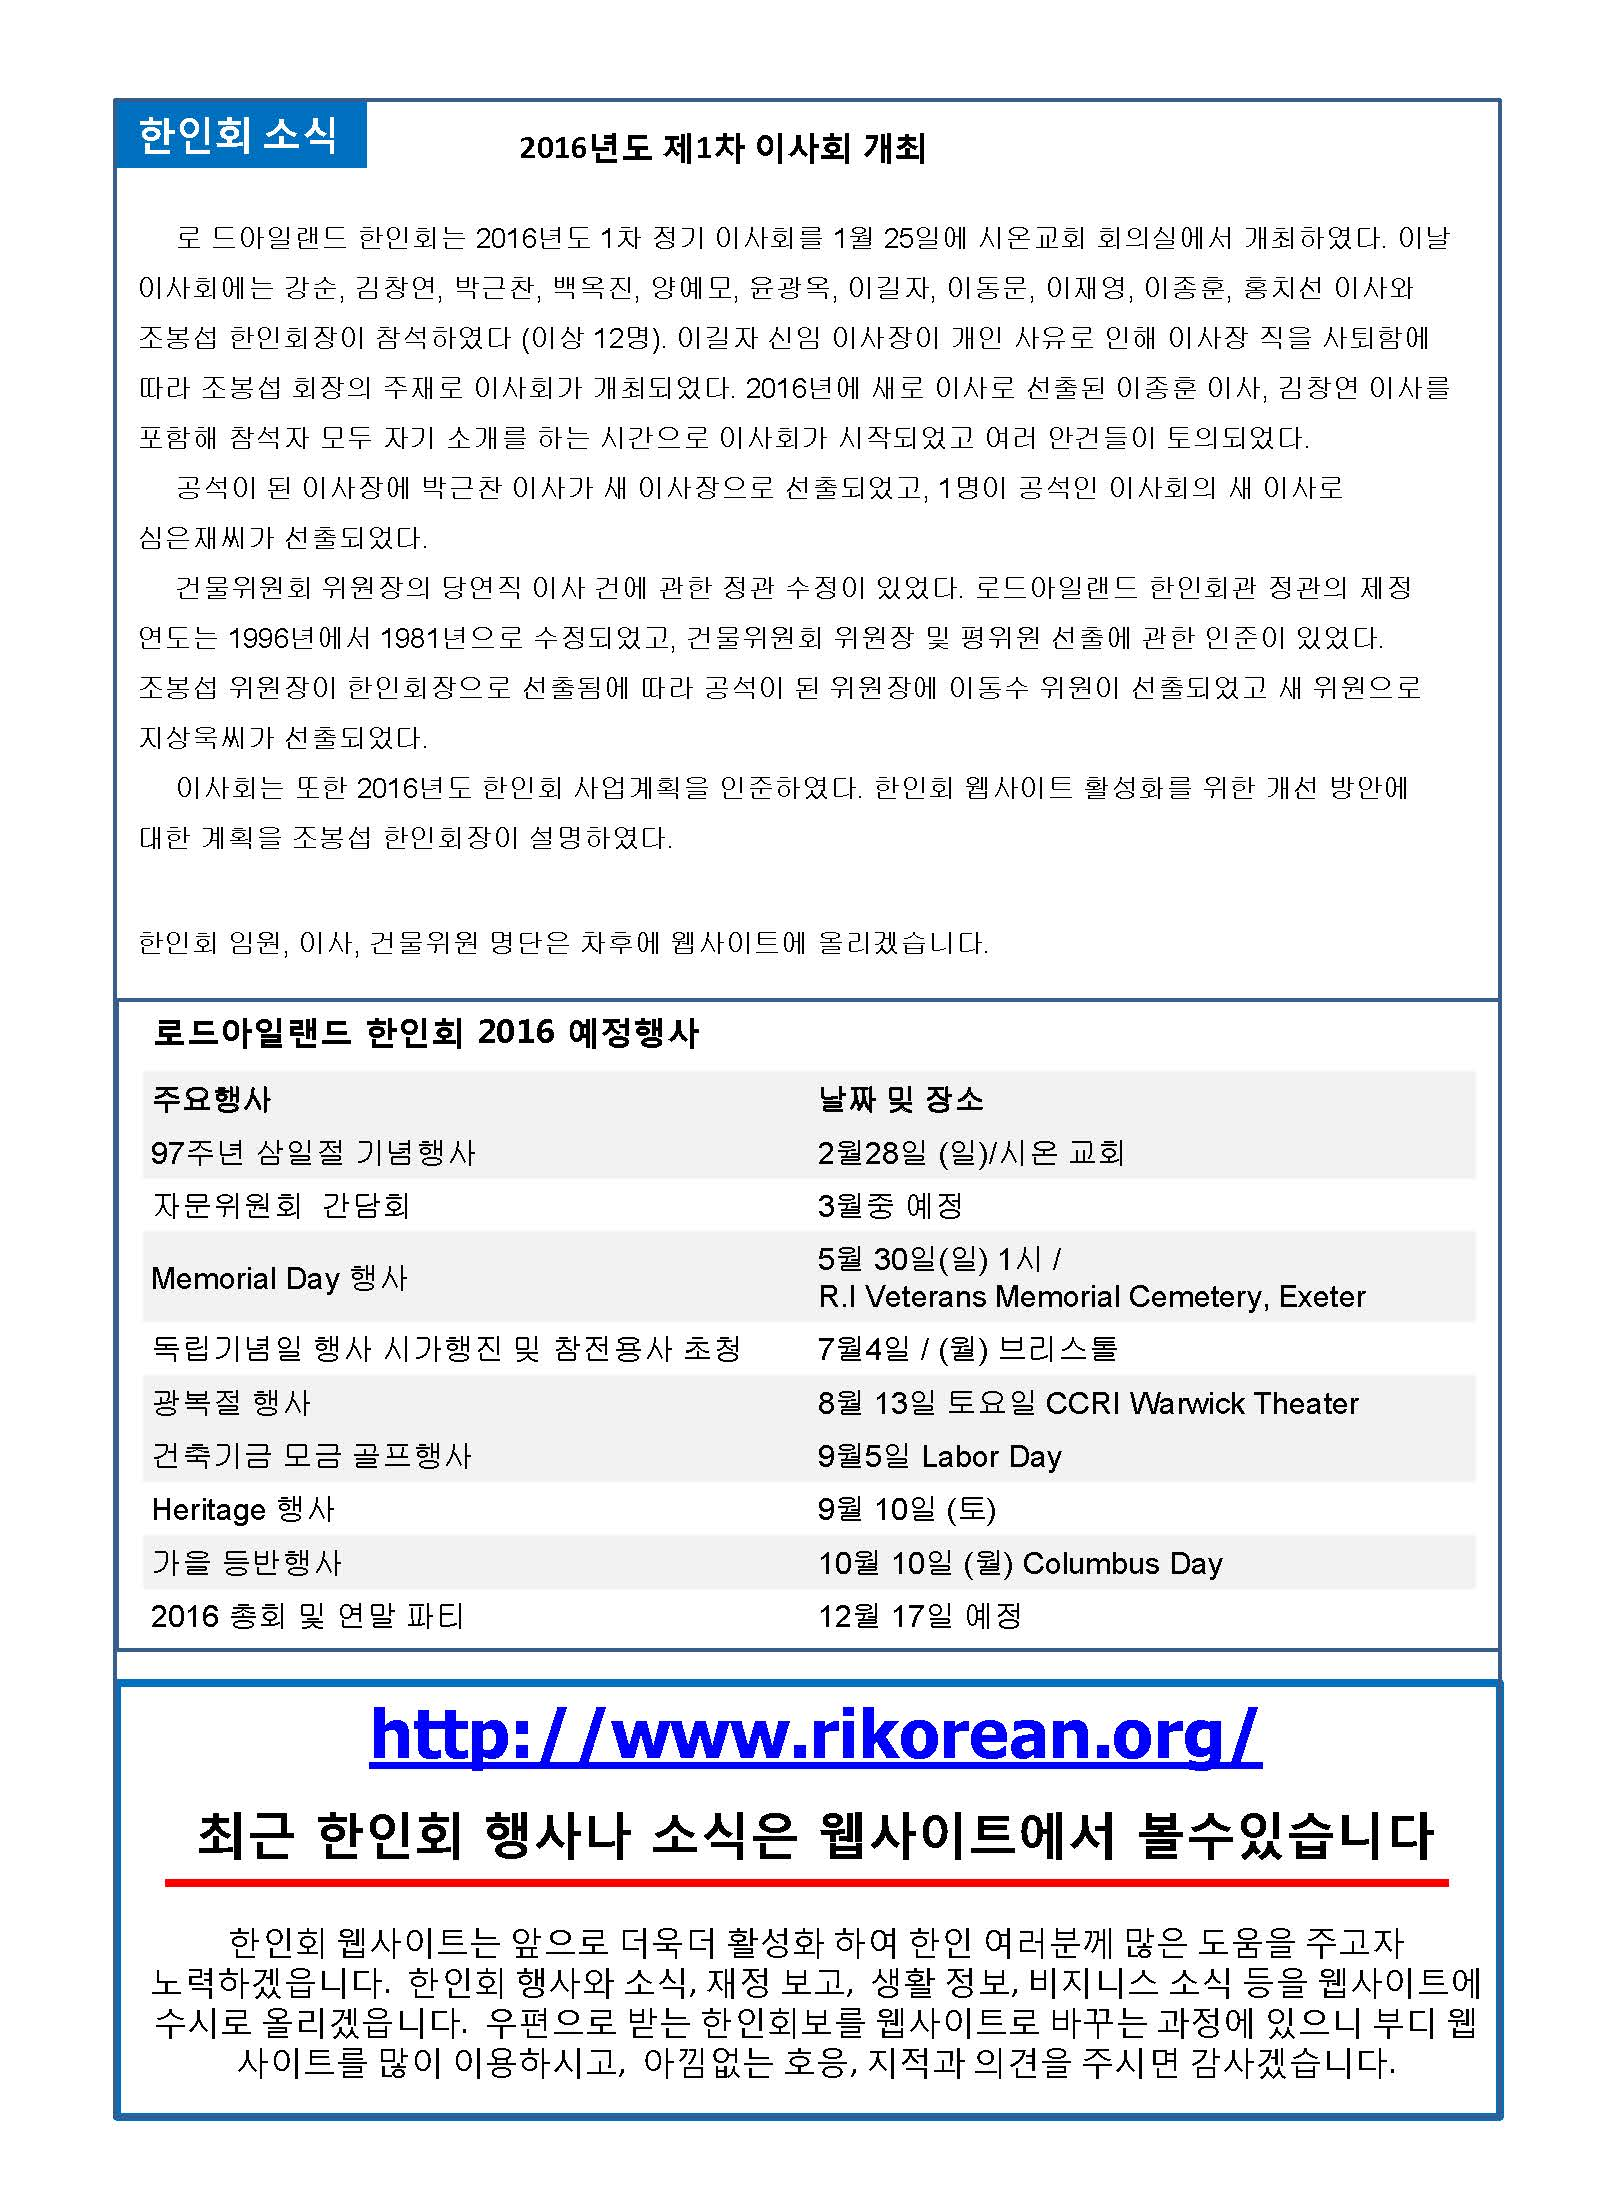 한인회보 2016 Feb 15 FINAL FOR WEB_Page_2.jpg